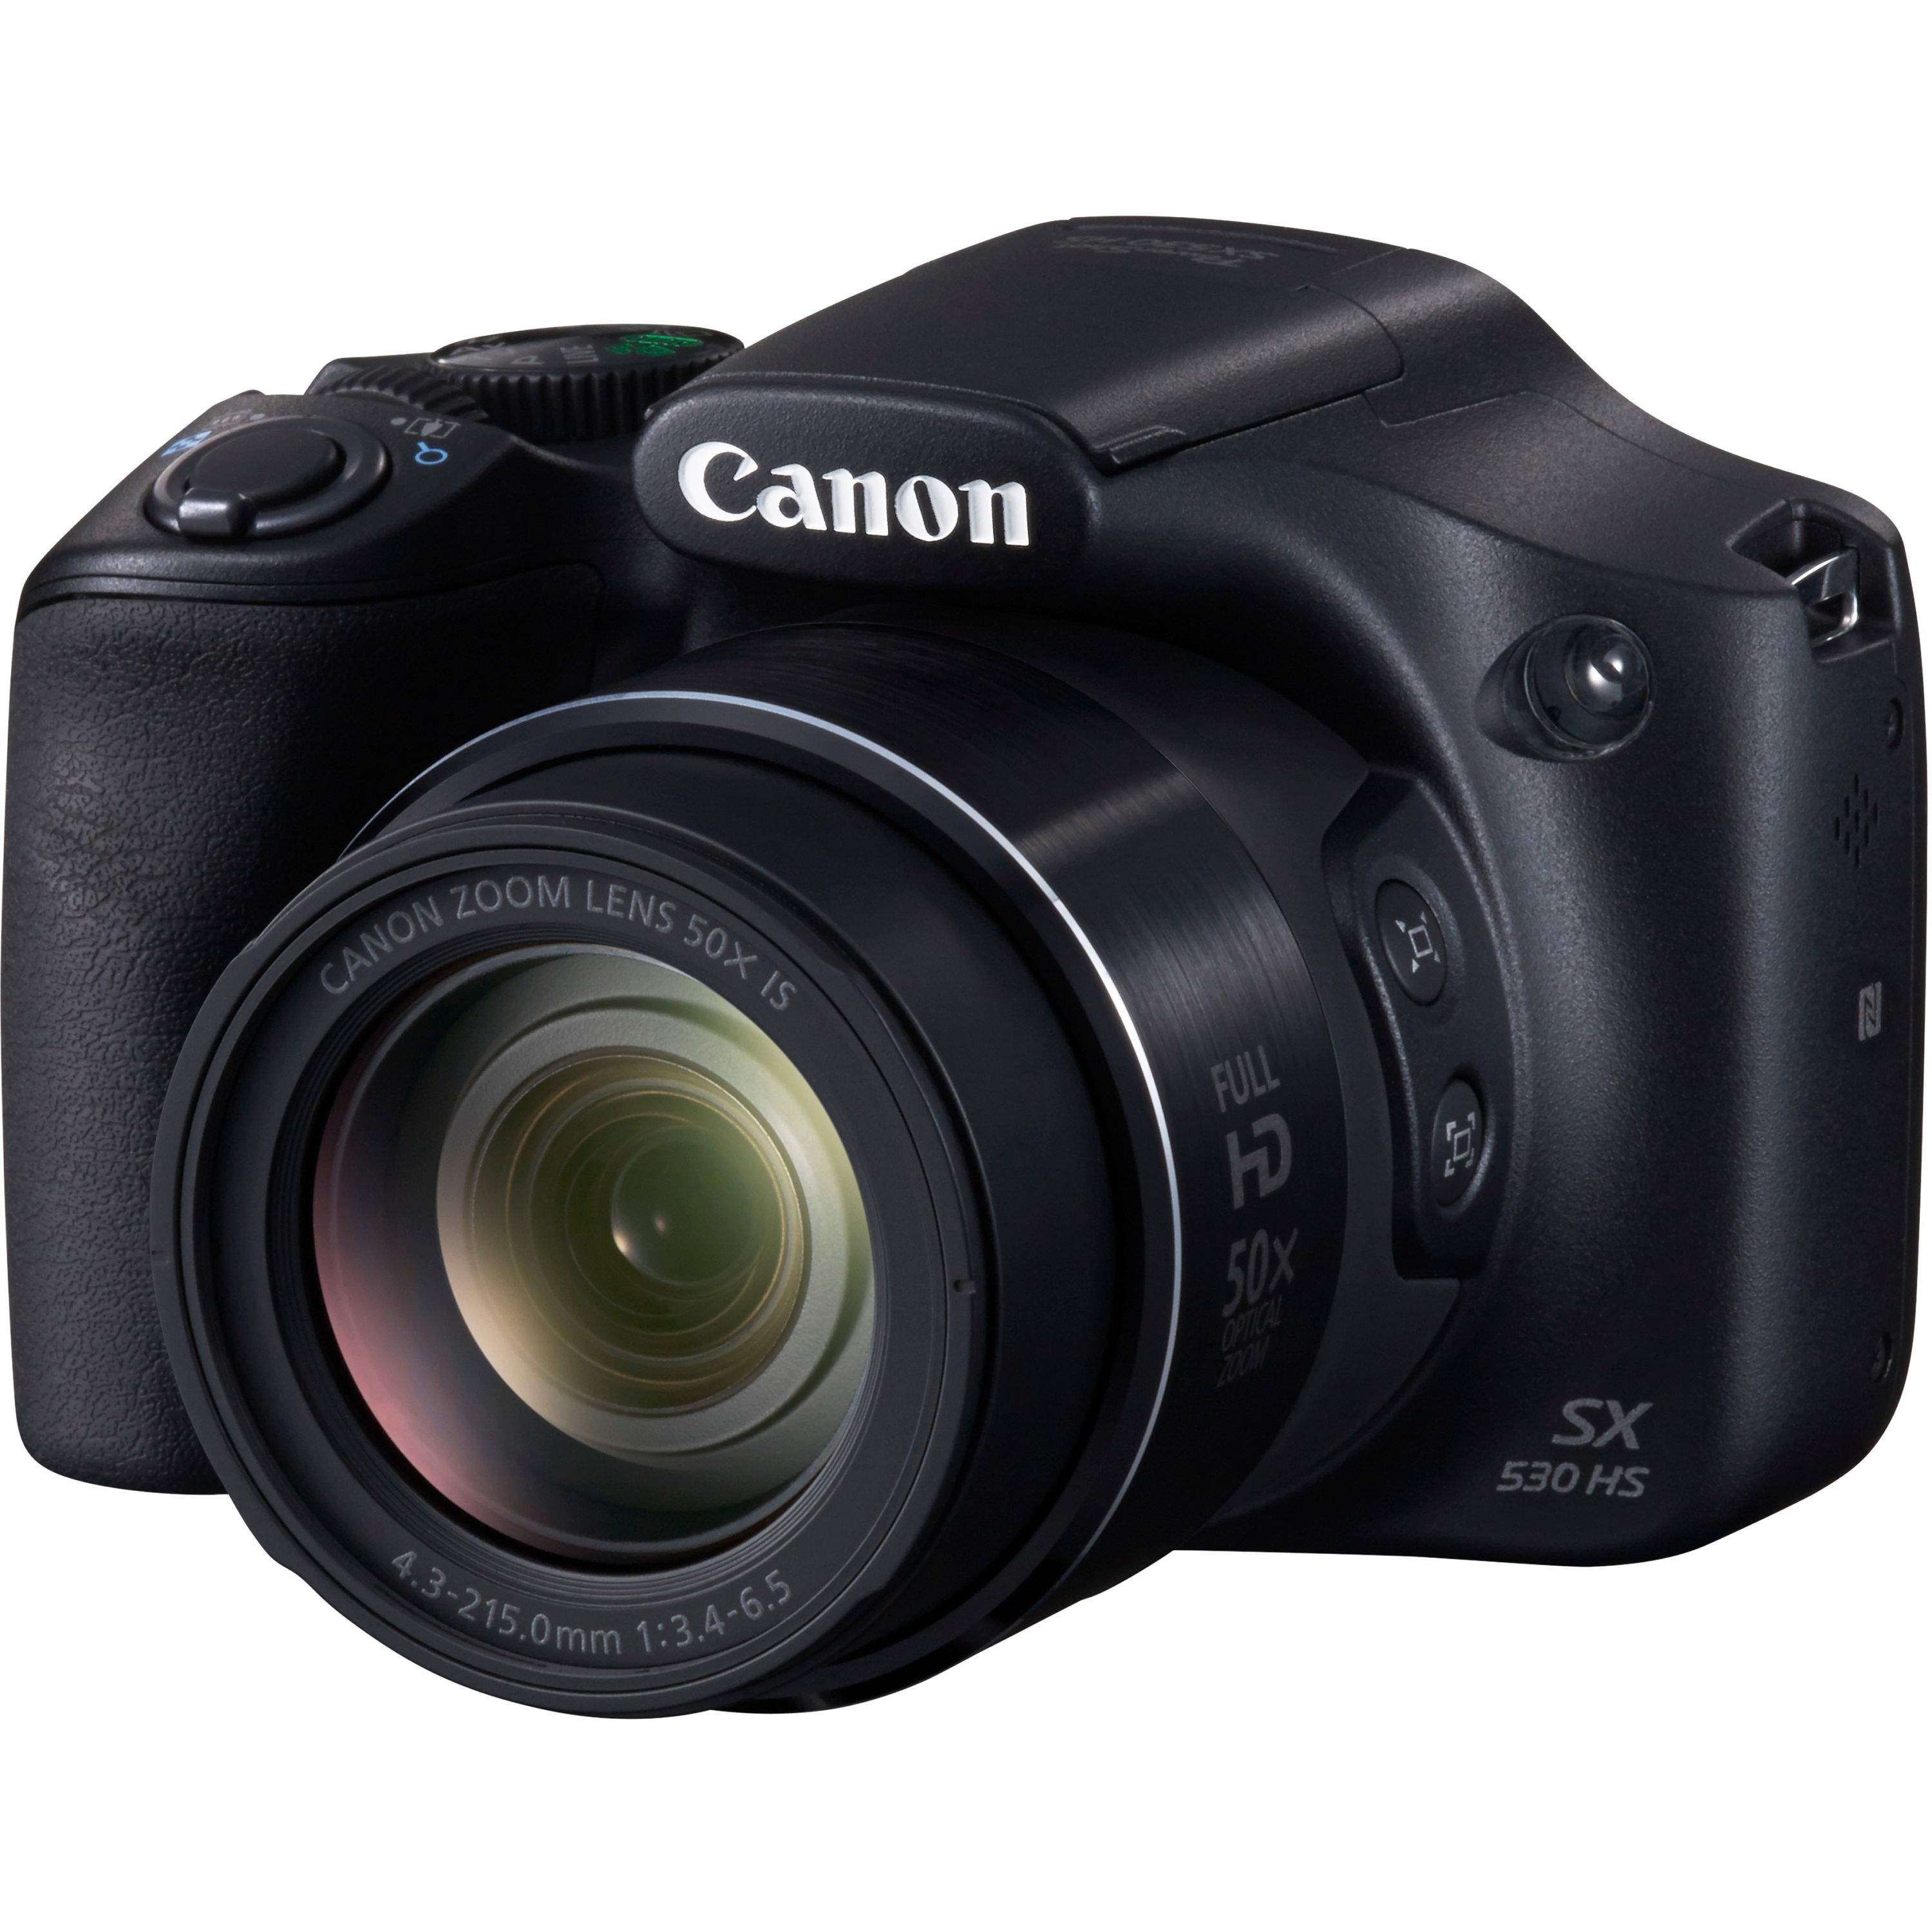 Canon Black PowerShot SX530 HS Digital Camera with 16 Megapixels and 50x Optical Zoom by Canon